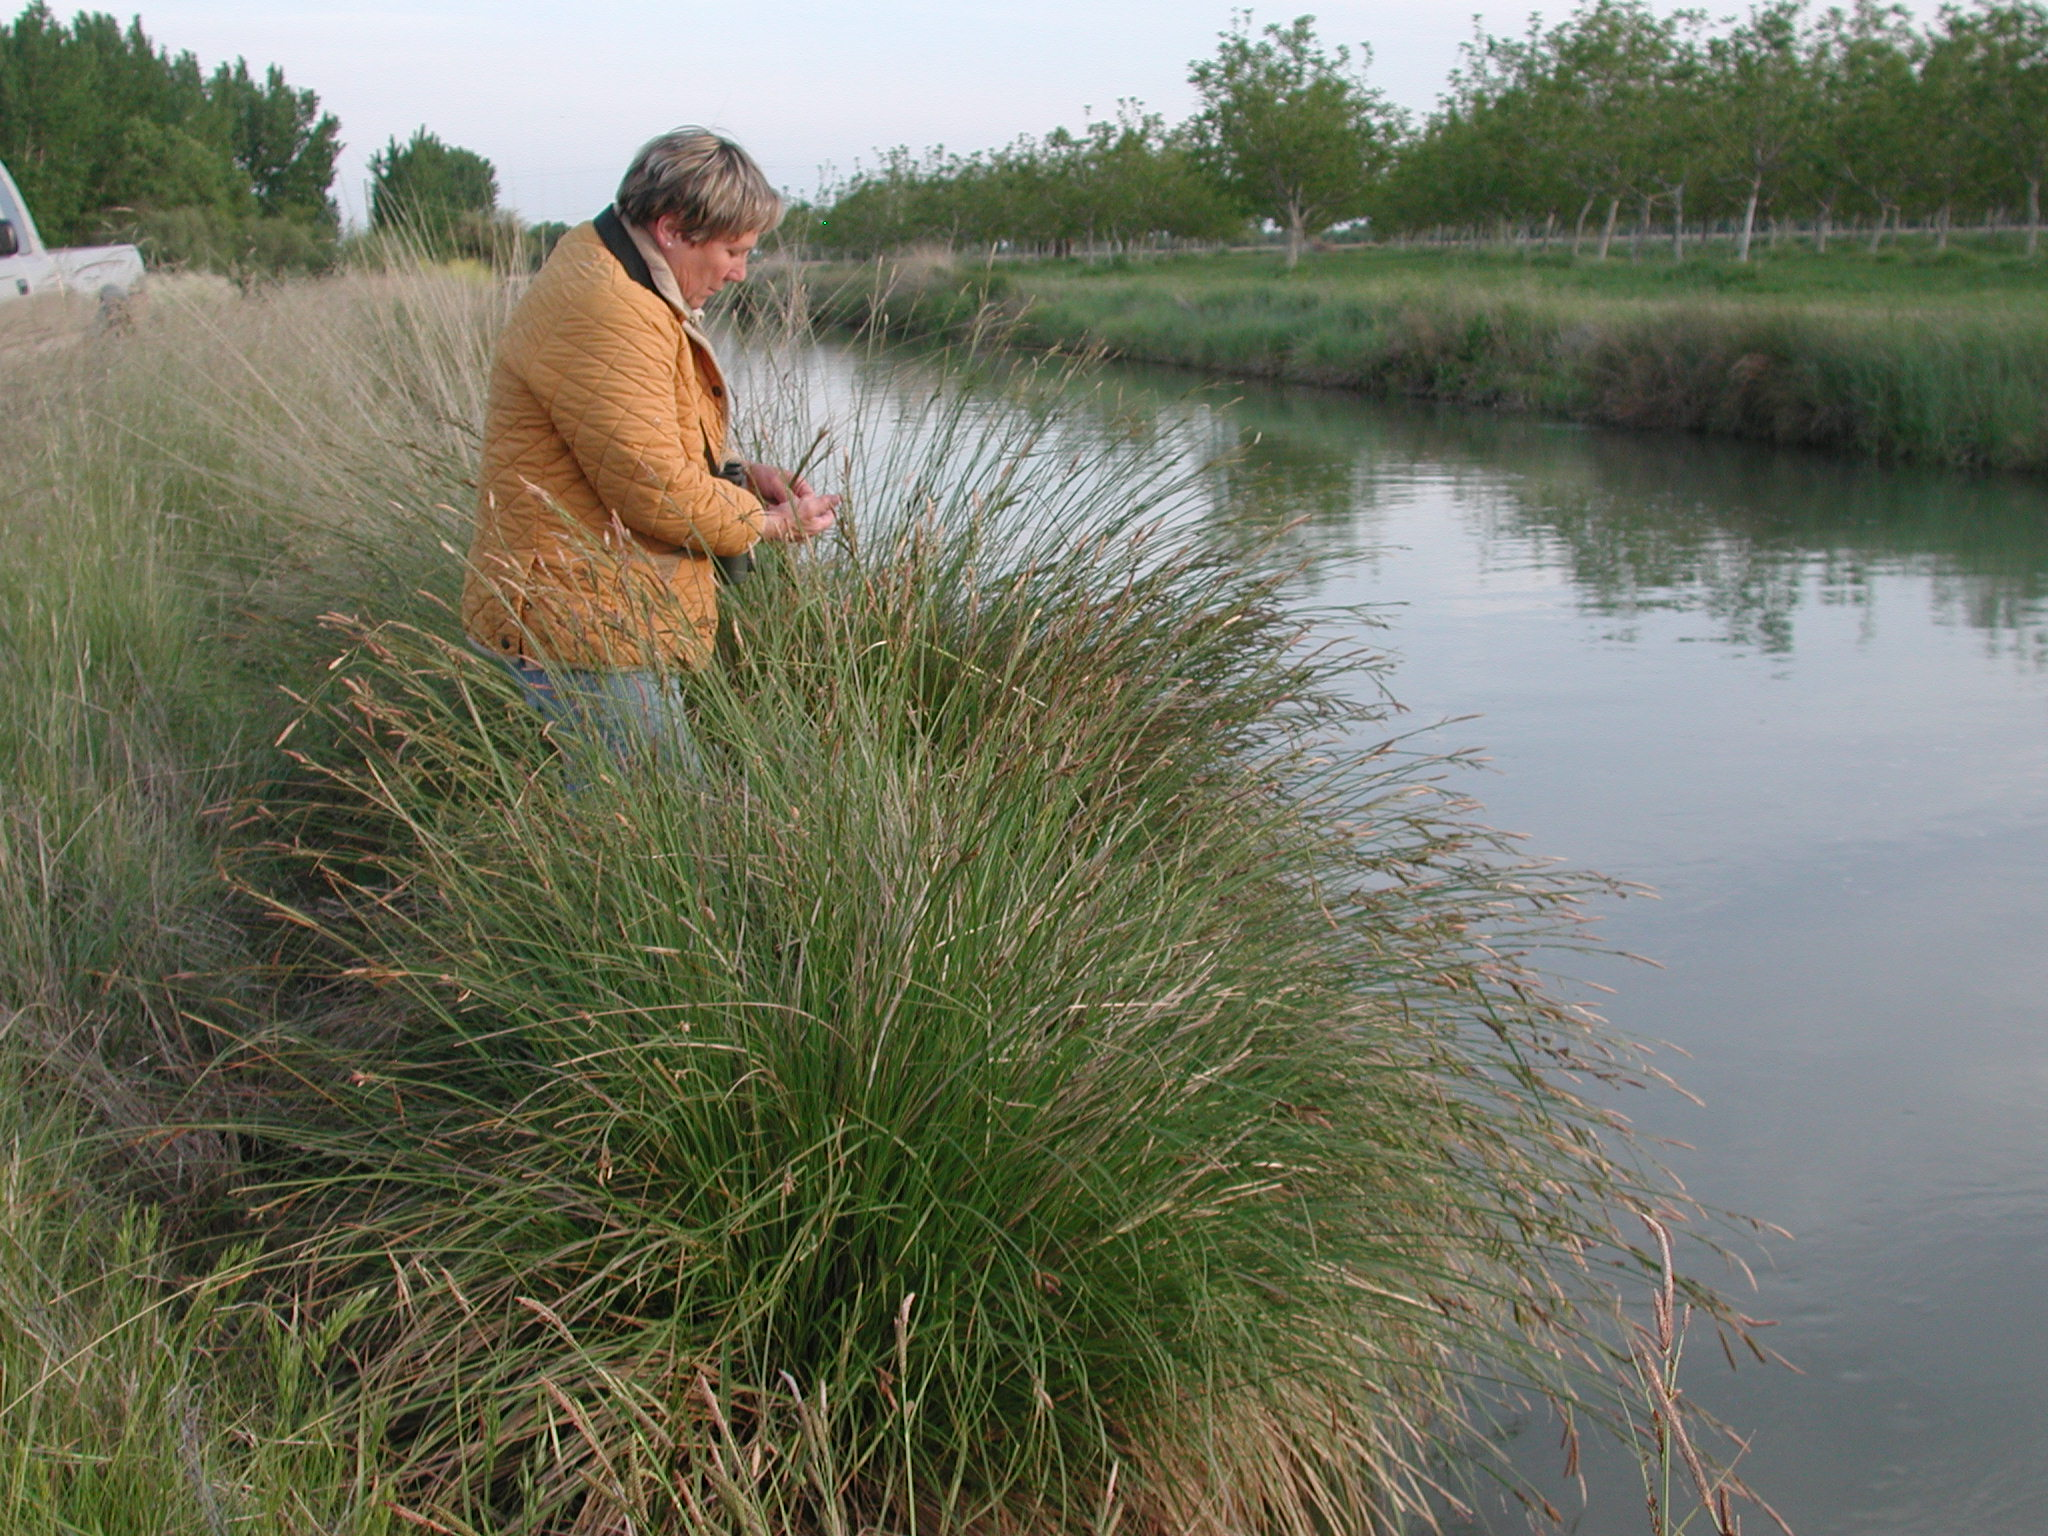 Marsha Anderson with Carex nudata